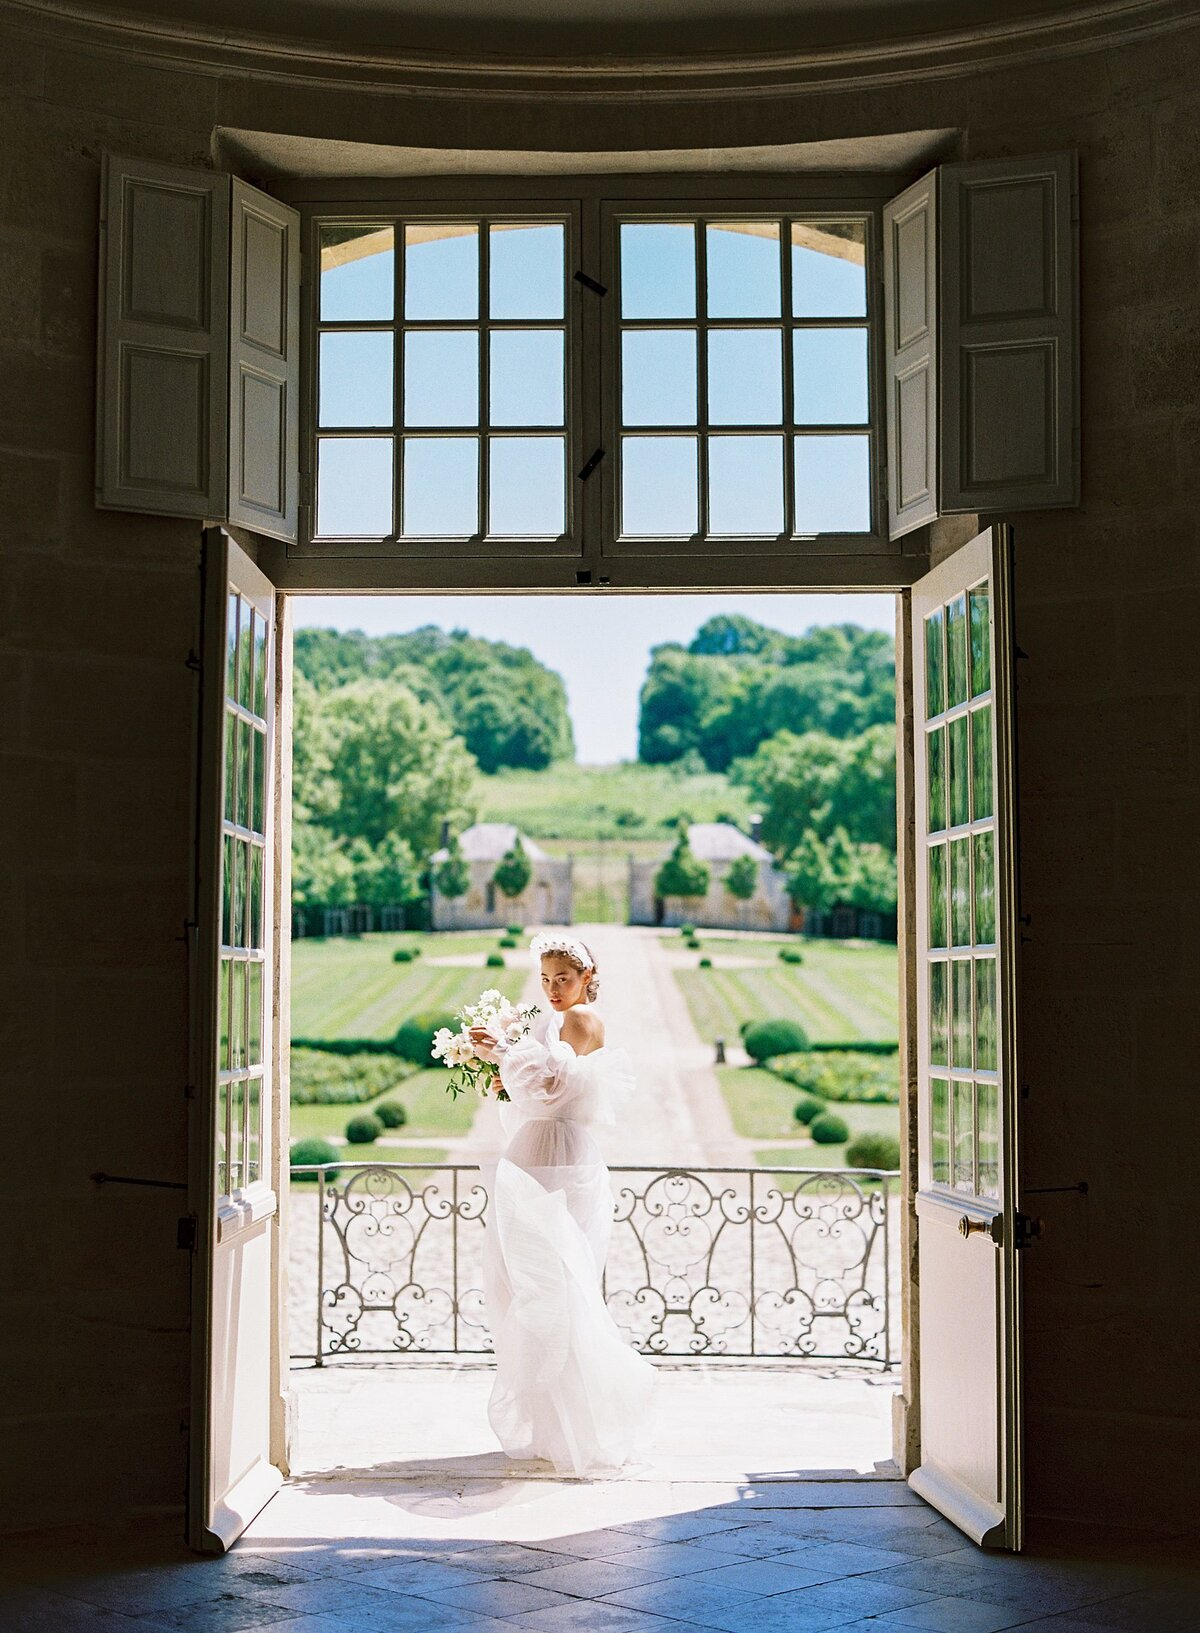 NKT-Events_Wedding-Inspiration-Editorial_Chateau-de-Villette-Bridal_0103